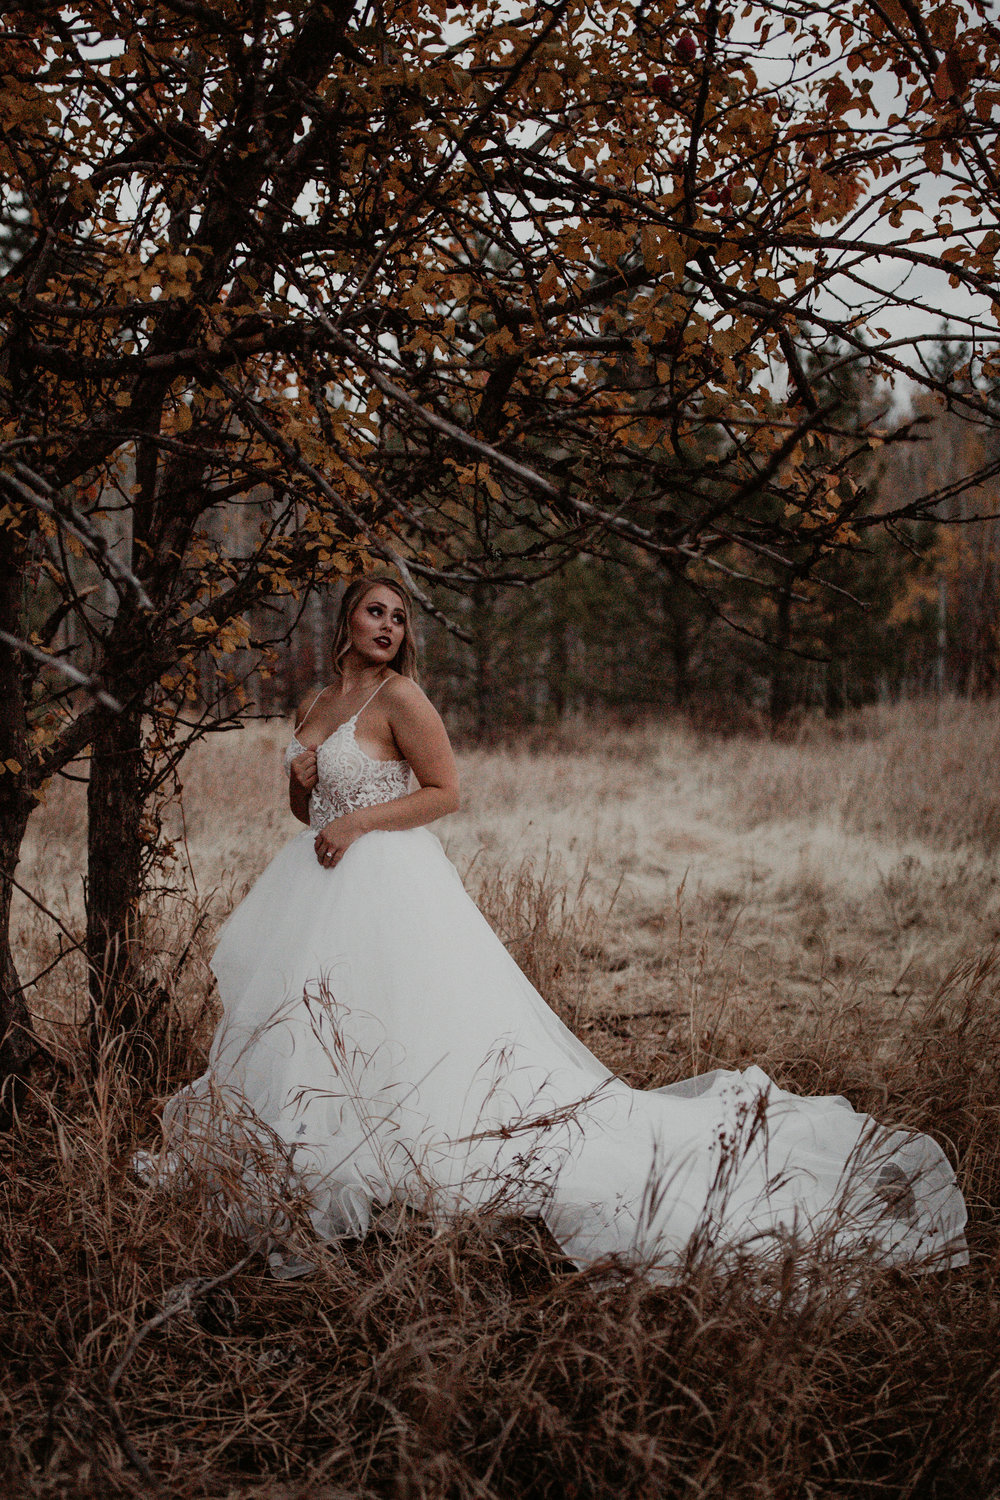 bridal gown under tree spokane image